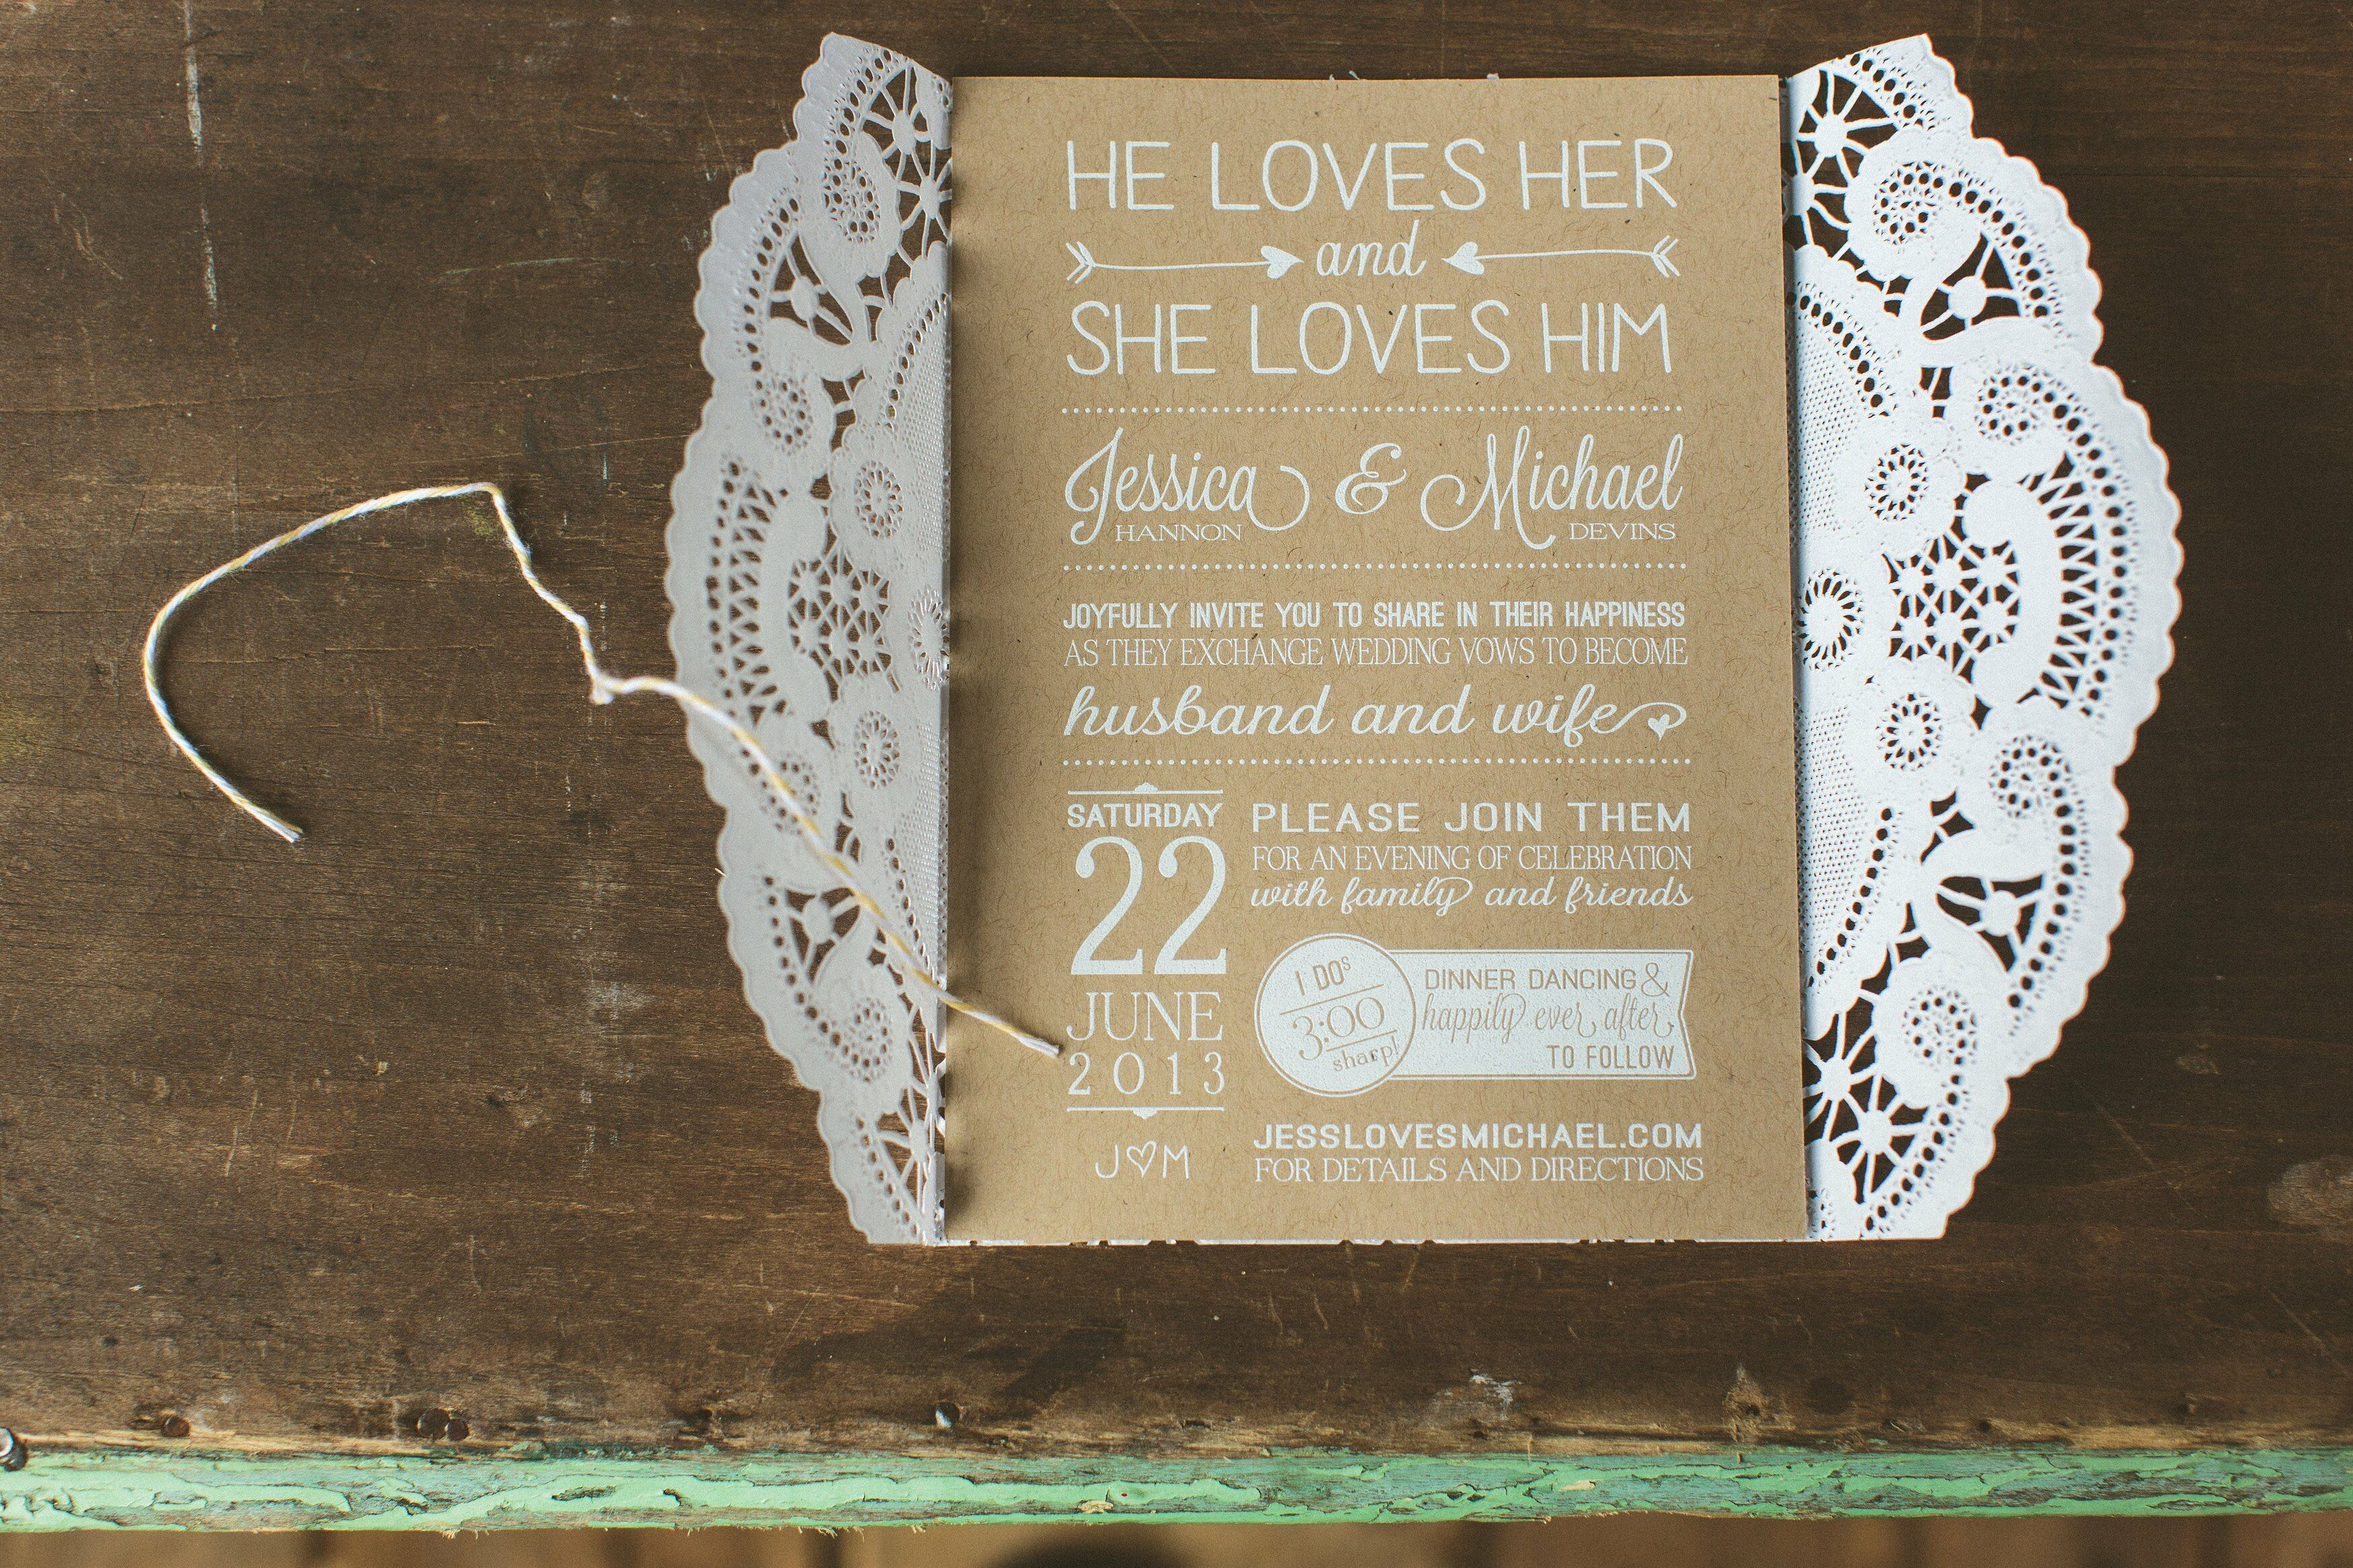 diy wedding invitations, Wedding invitations